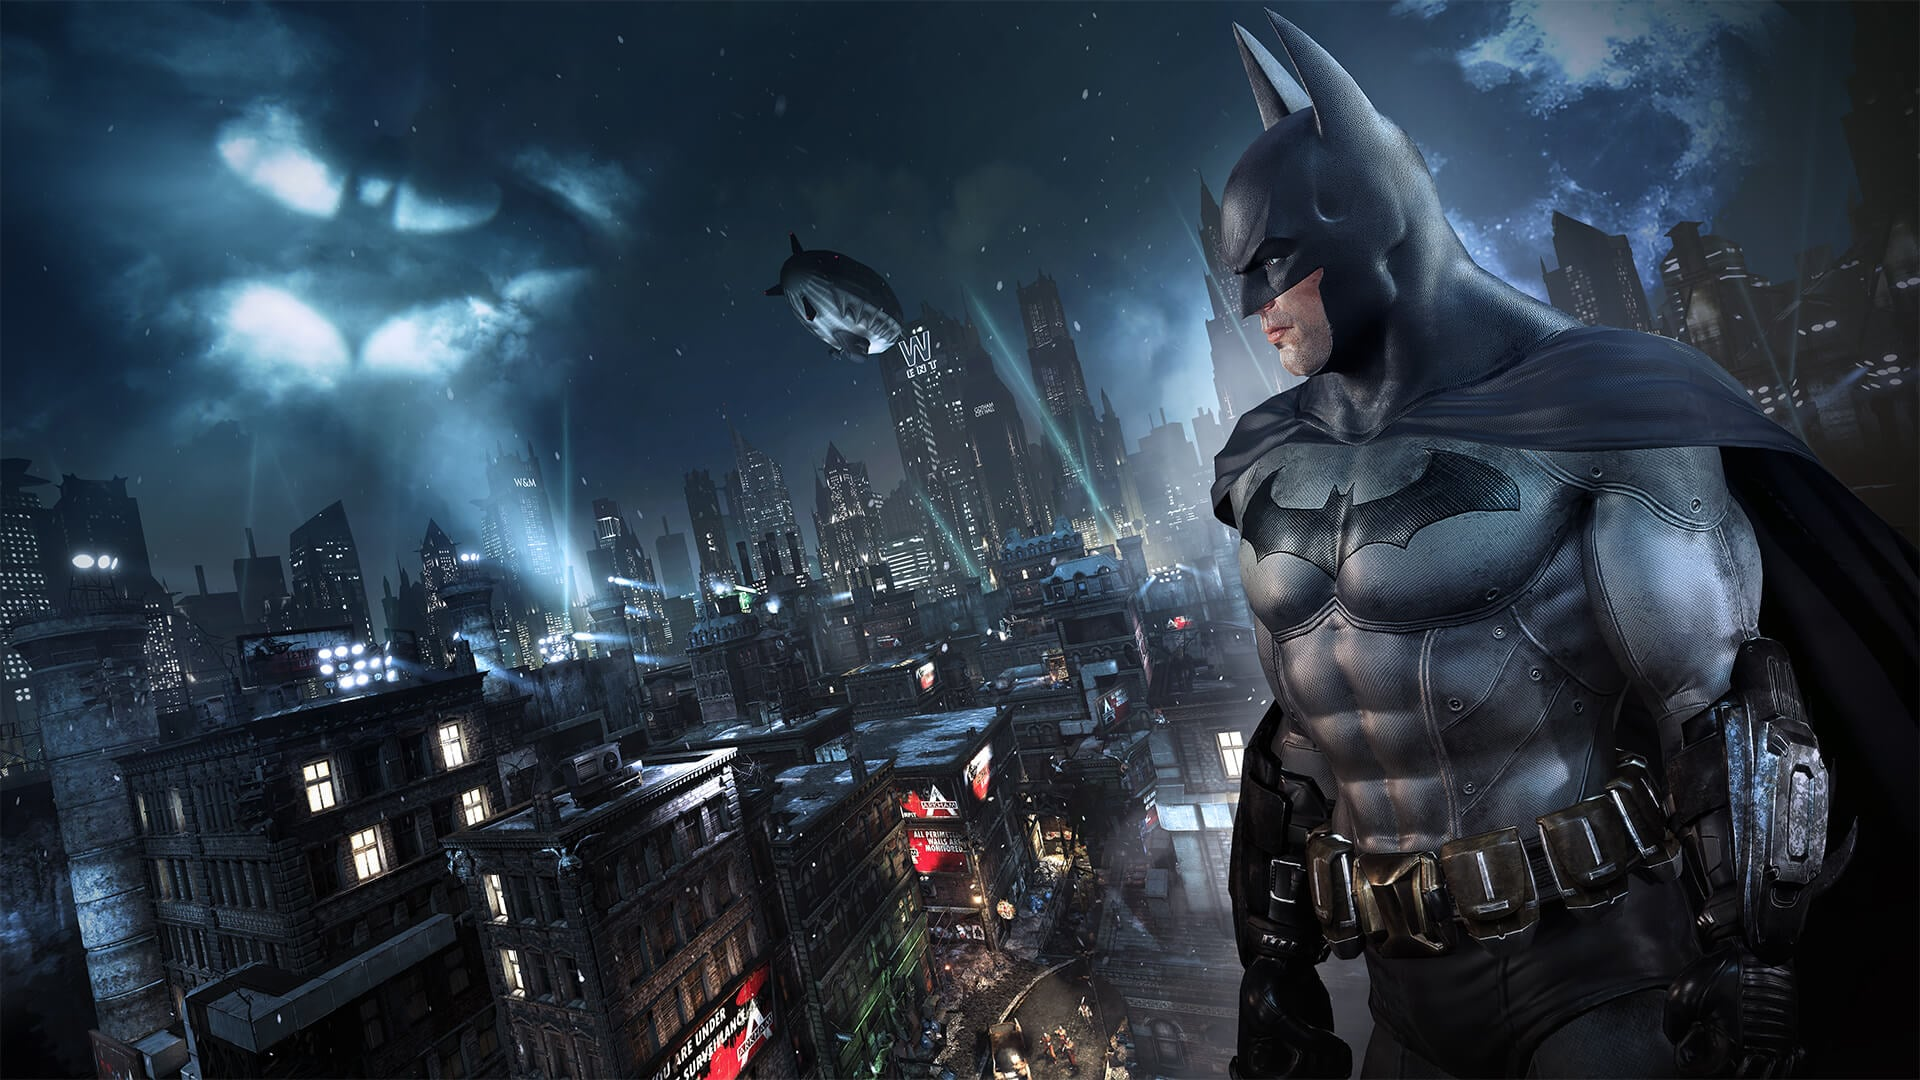 Batman: Arkham Asylum and Batman: Arkham City Achievement List Reveal